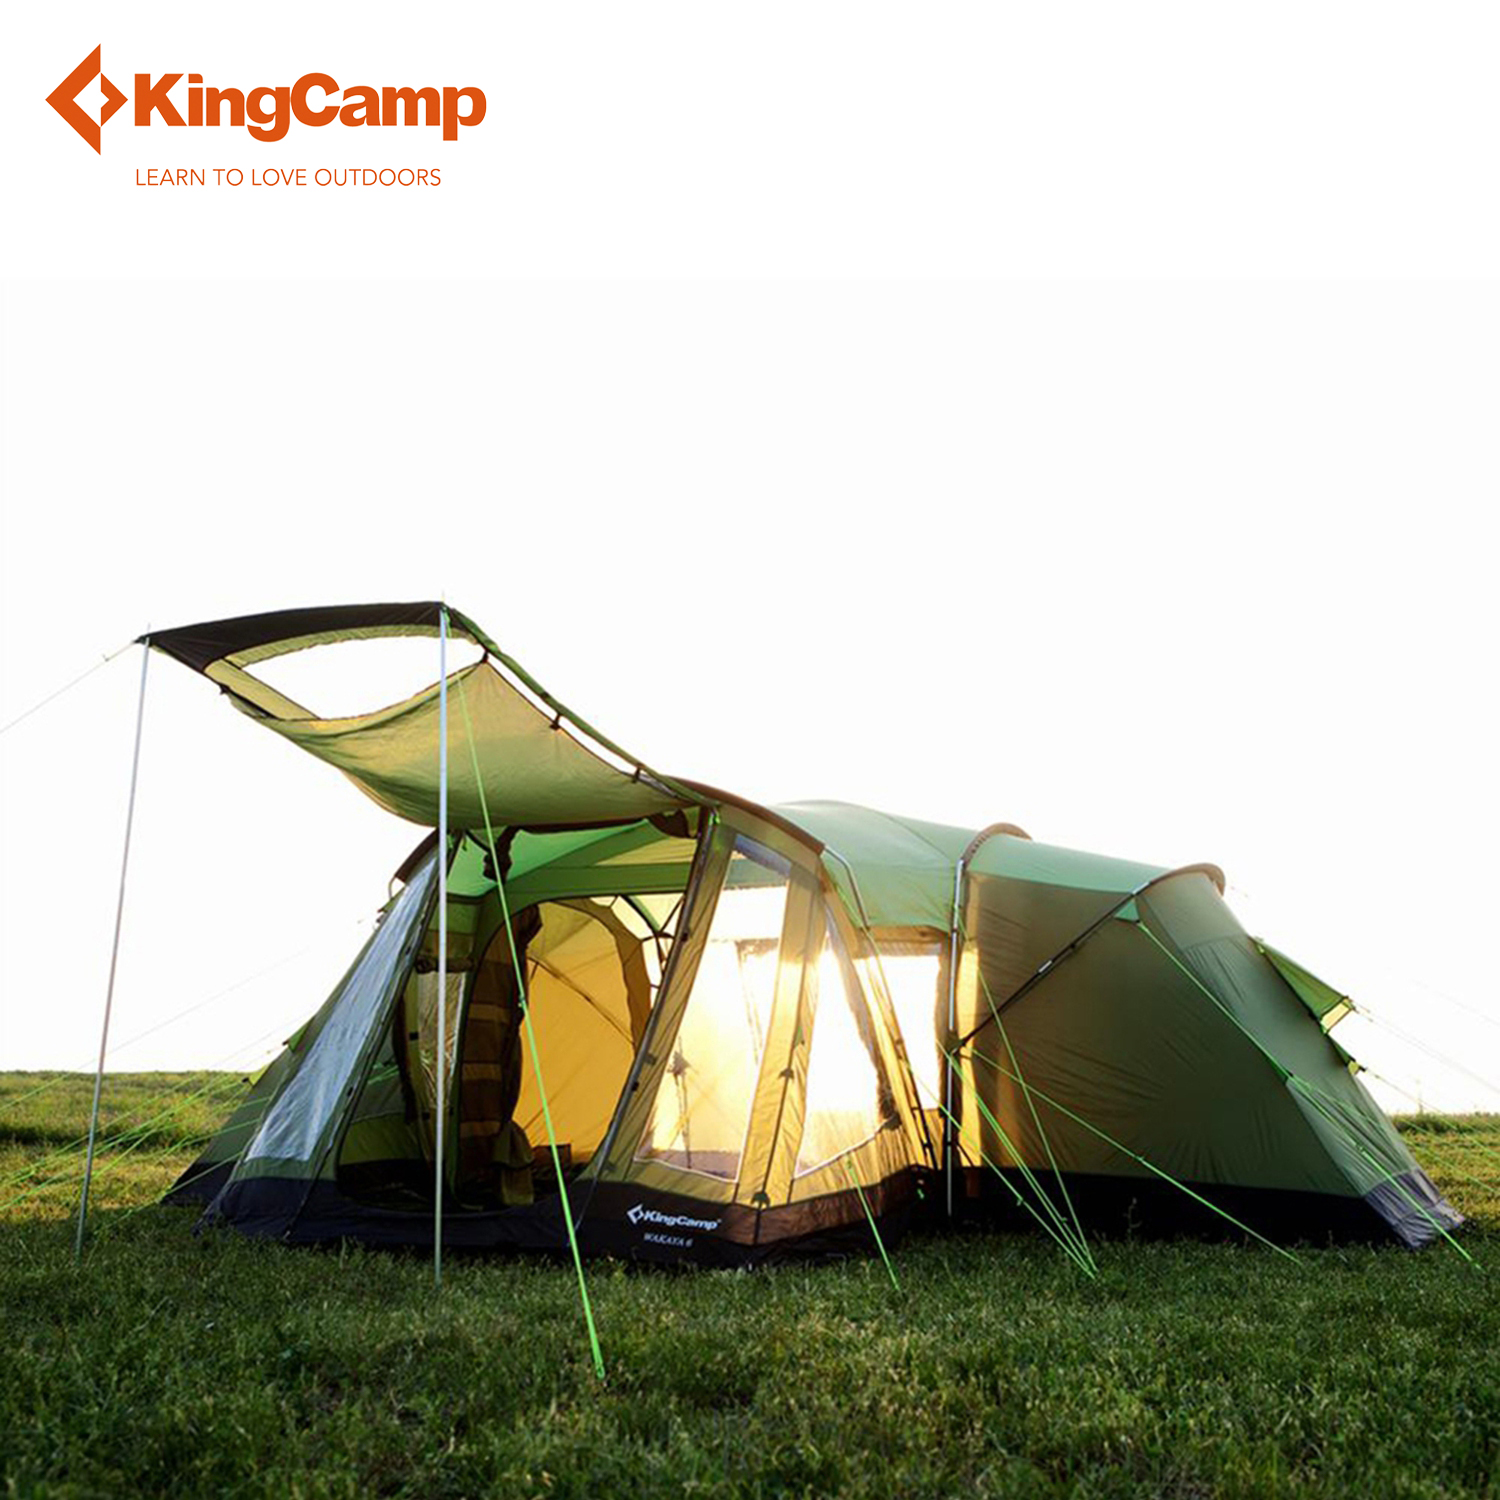 KingC& 6 Person 3 Season Outdoor Family Tent with Bed Room for Car Travel Rainproof Windproof Tent for Self driving C&ing-in Tents from Sports ...  sc 1 st  AliExpress.com & KingCamp 6 Person 3 Season Outdoor Family Tent with Bed Room for ...